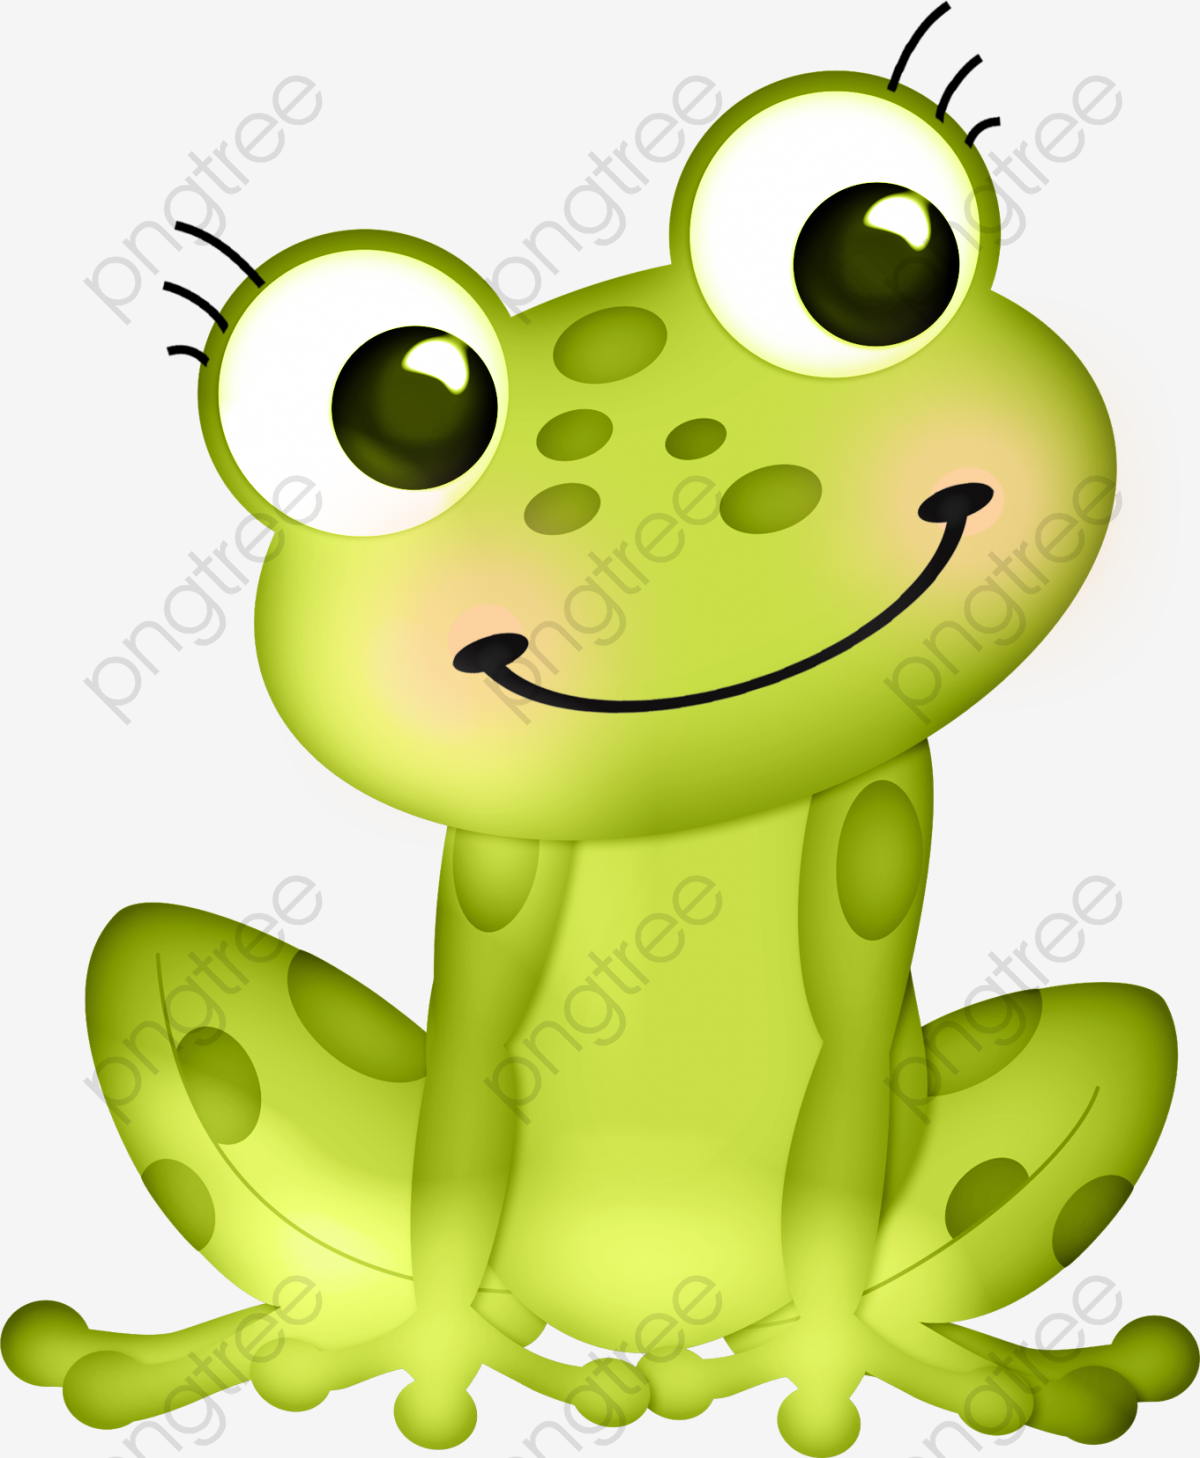 Frog Png With No Border - Cute Frog, Frog Clipart, Cute Clipart, Frog PNG Transparent Image ...